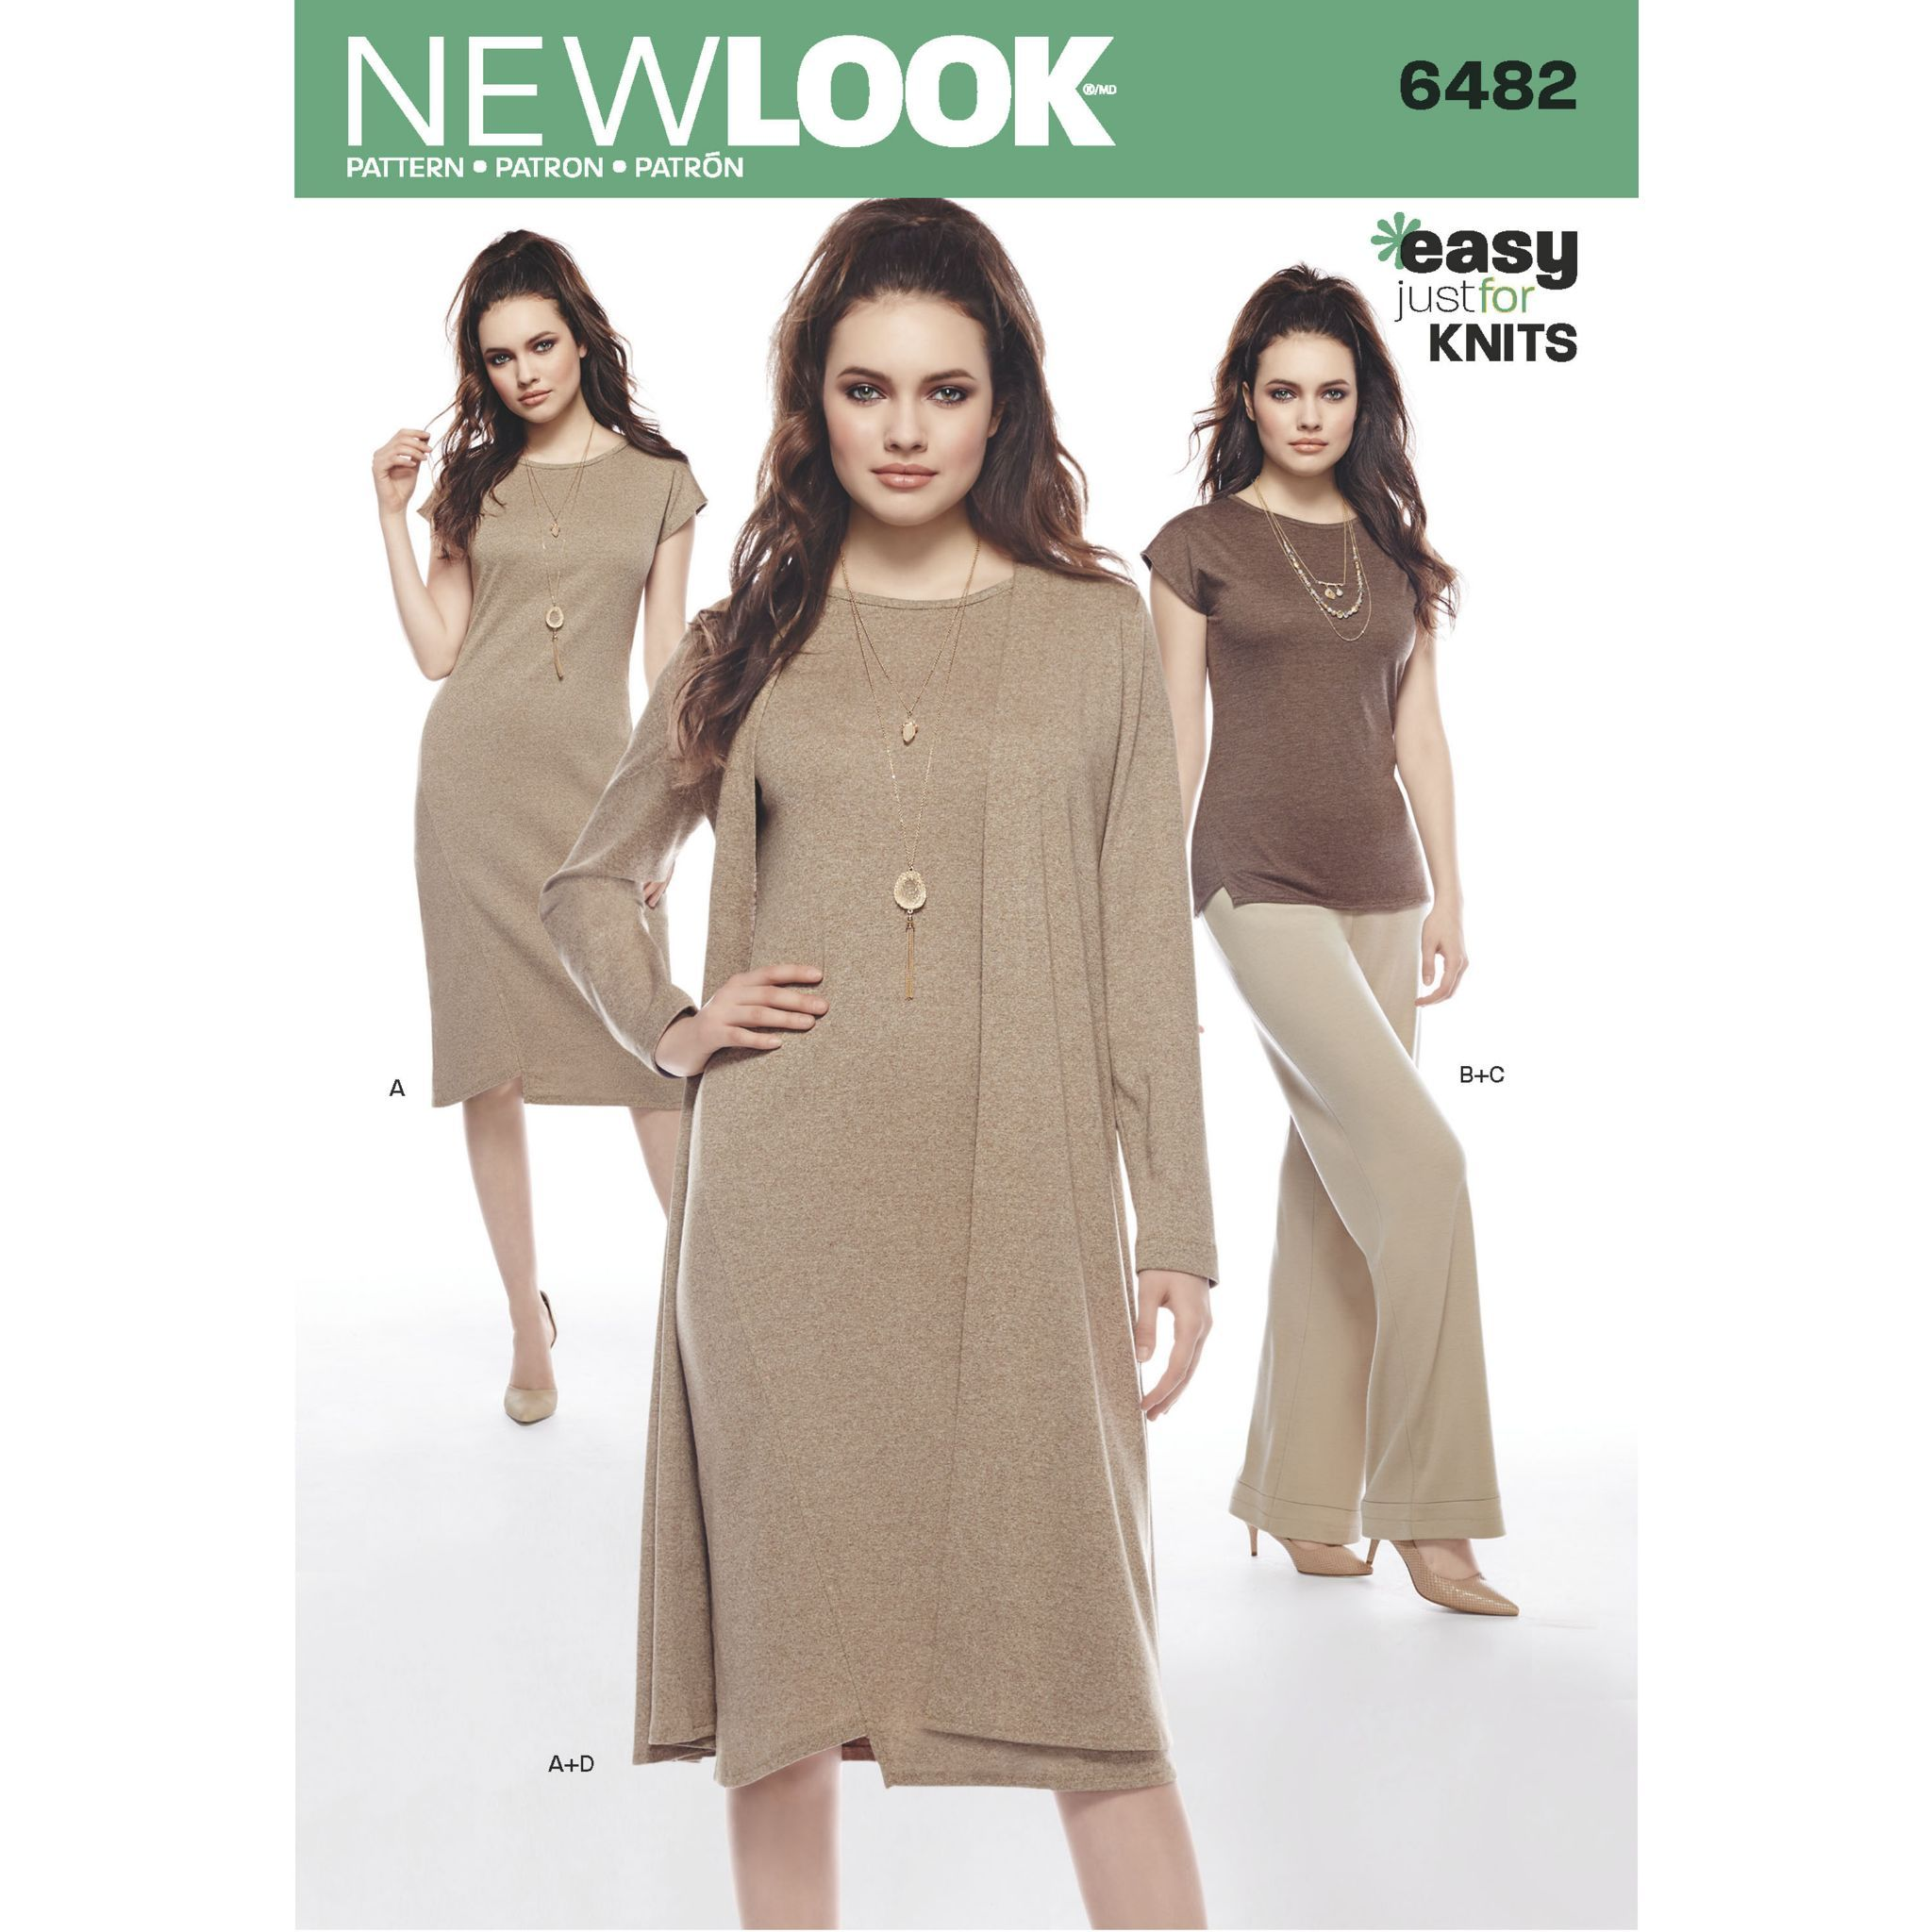 6482 New Look Pattern Misses Knit Dress Tunic Trousers and Duster Coat